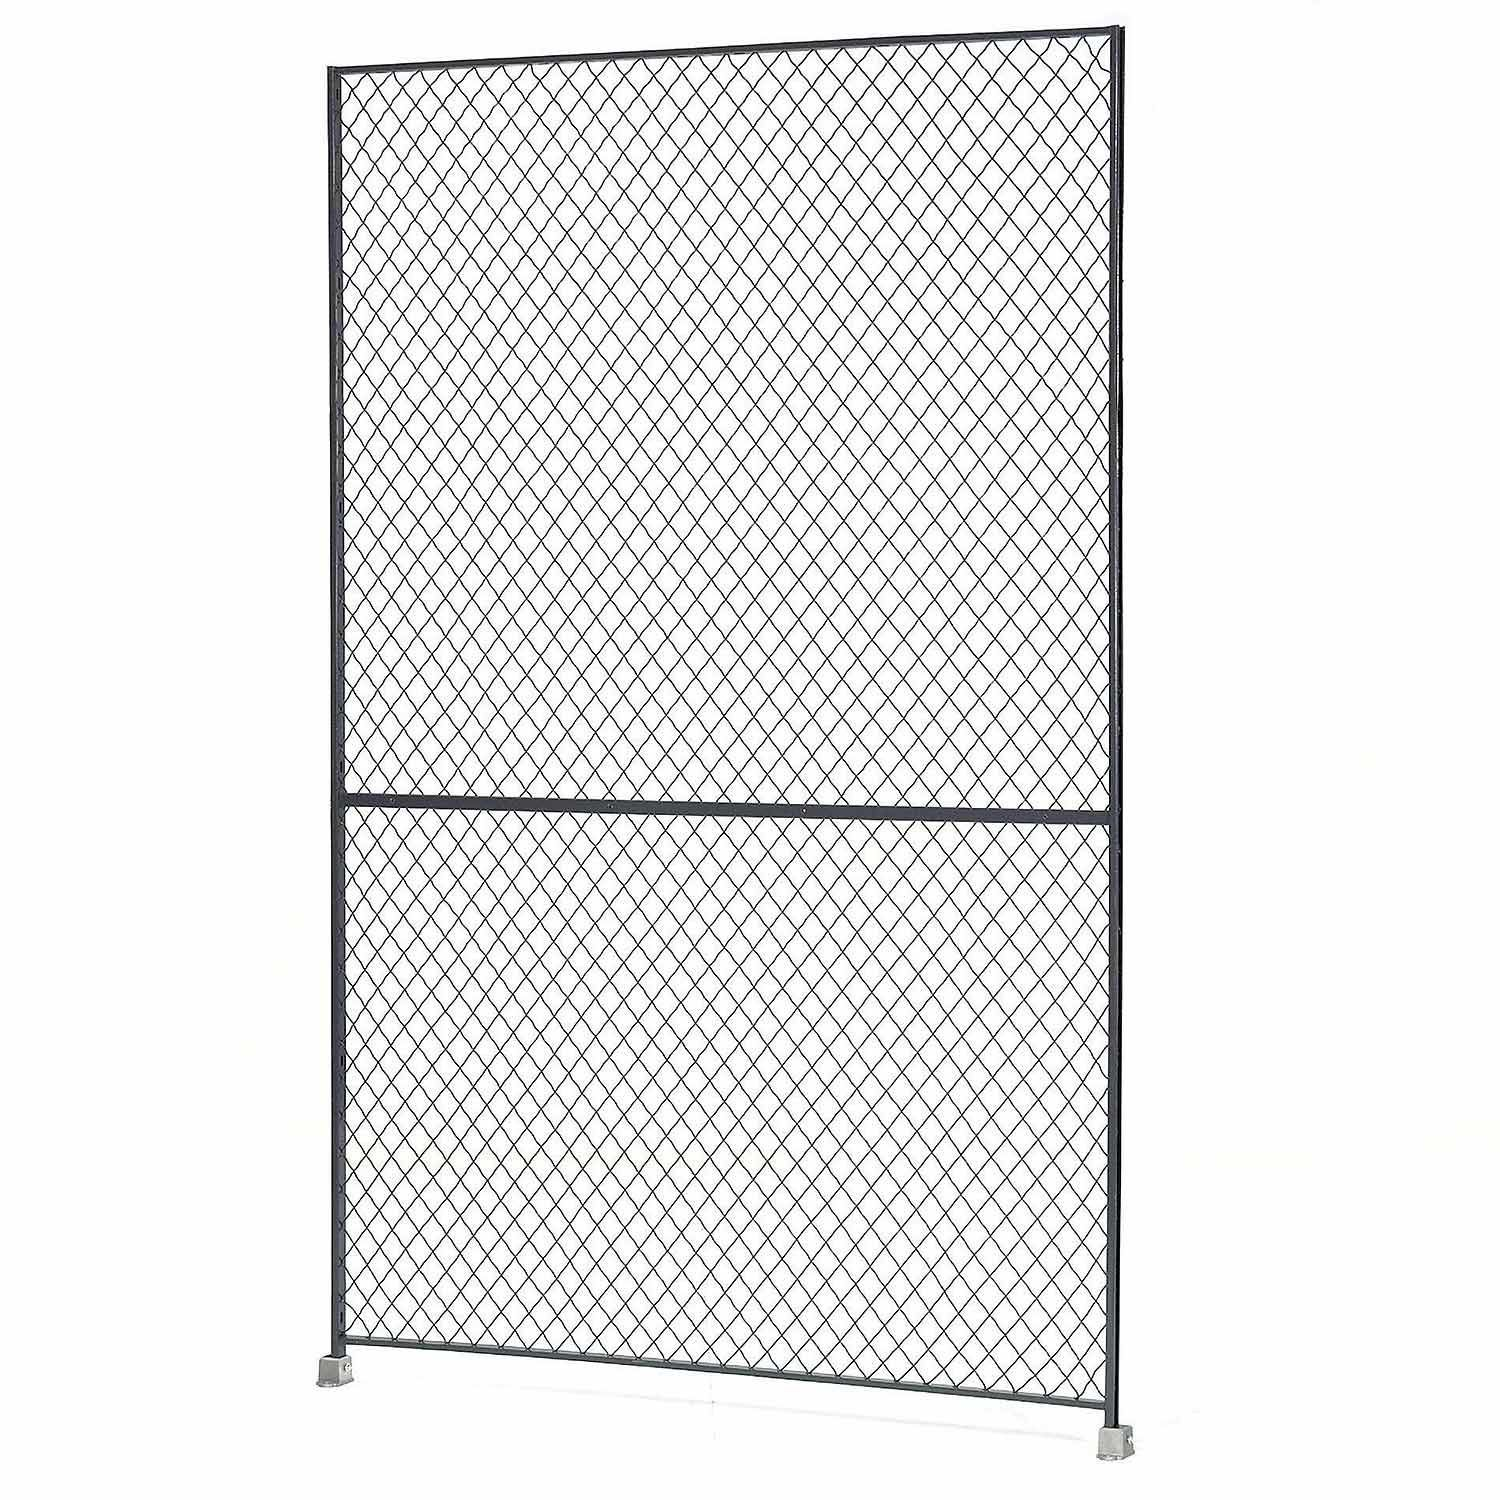 Wire Mesh Partitions Fencing Partition Security Enclosures Wire Mesh Panel 5x8 603324 Globalindustrial Com With Images Wire Mesh Mesh Panel Wire Mesh Fence